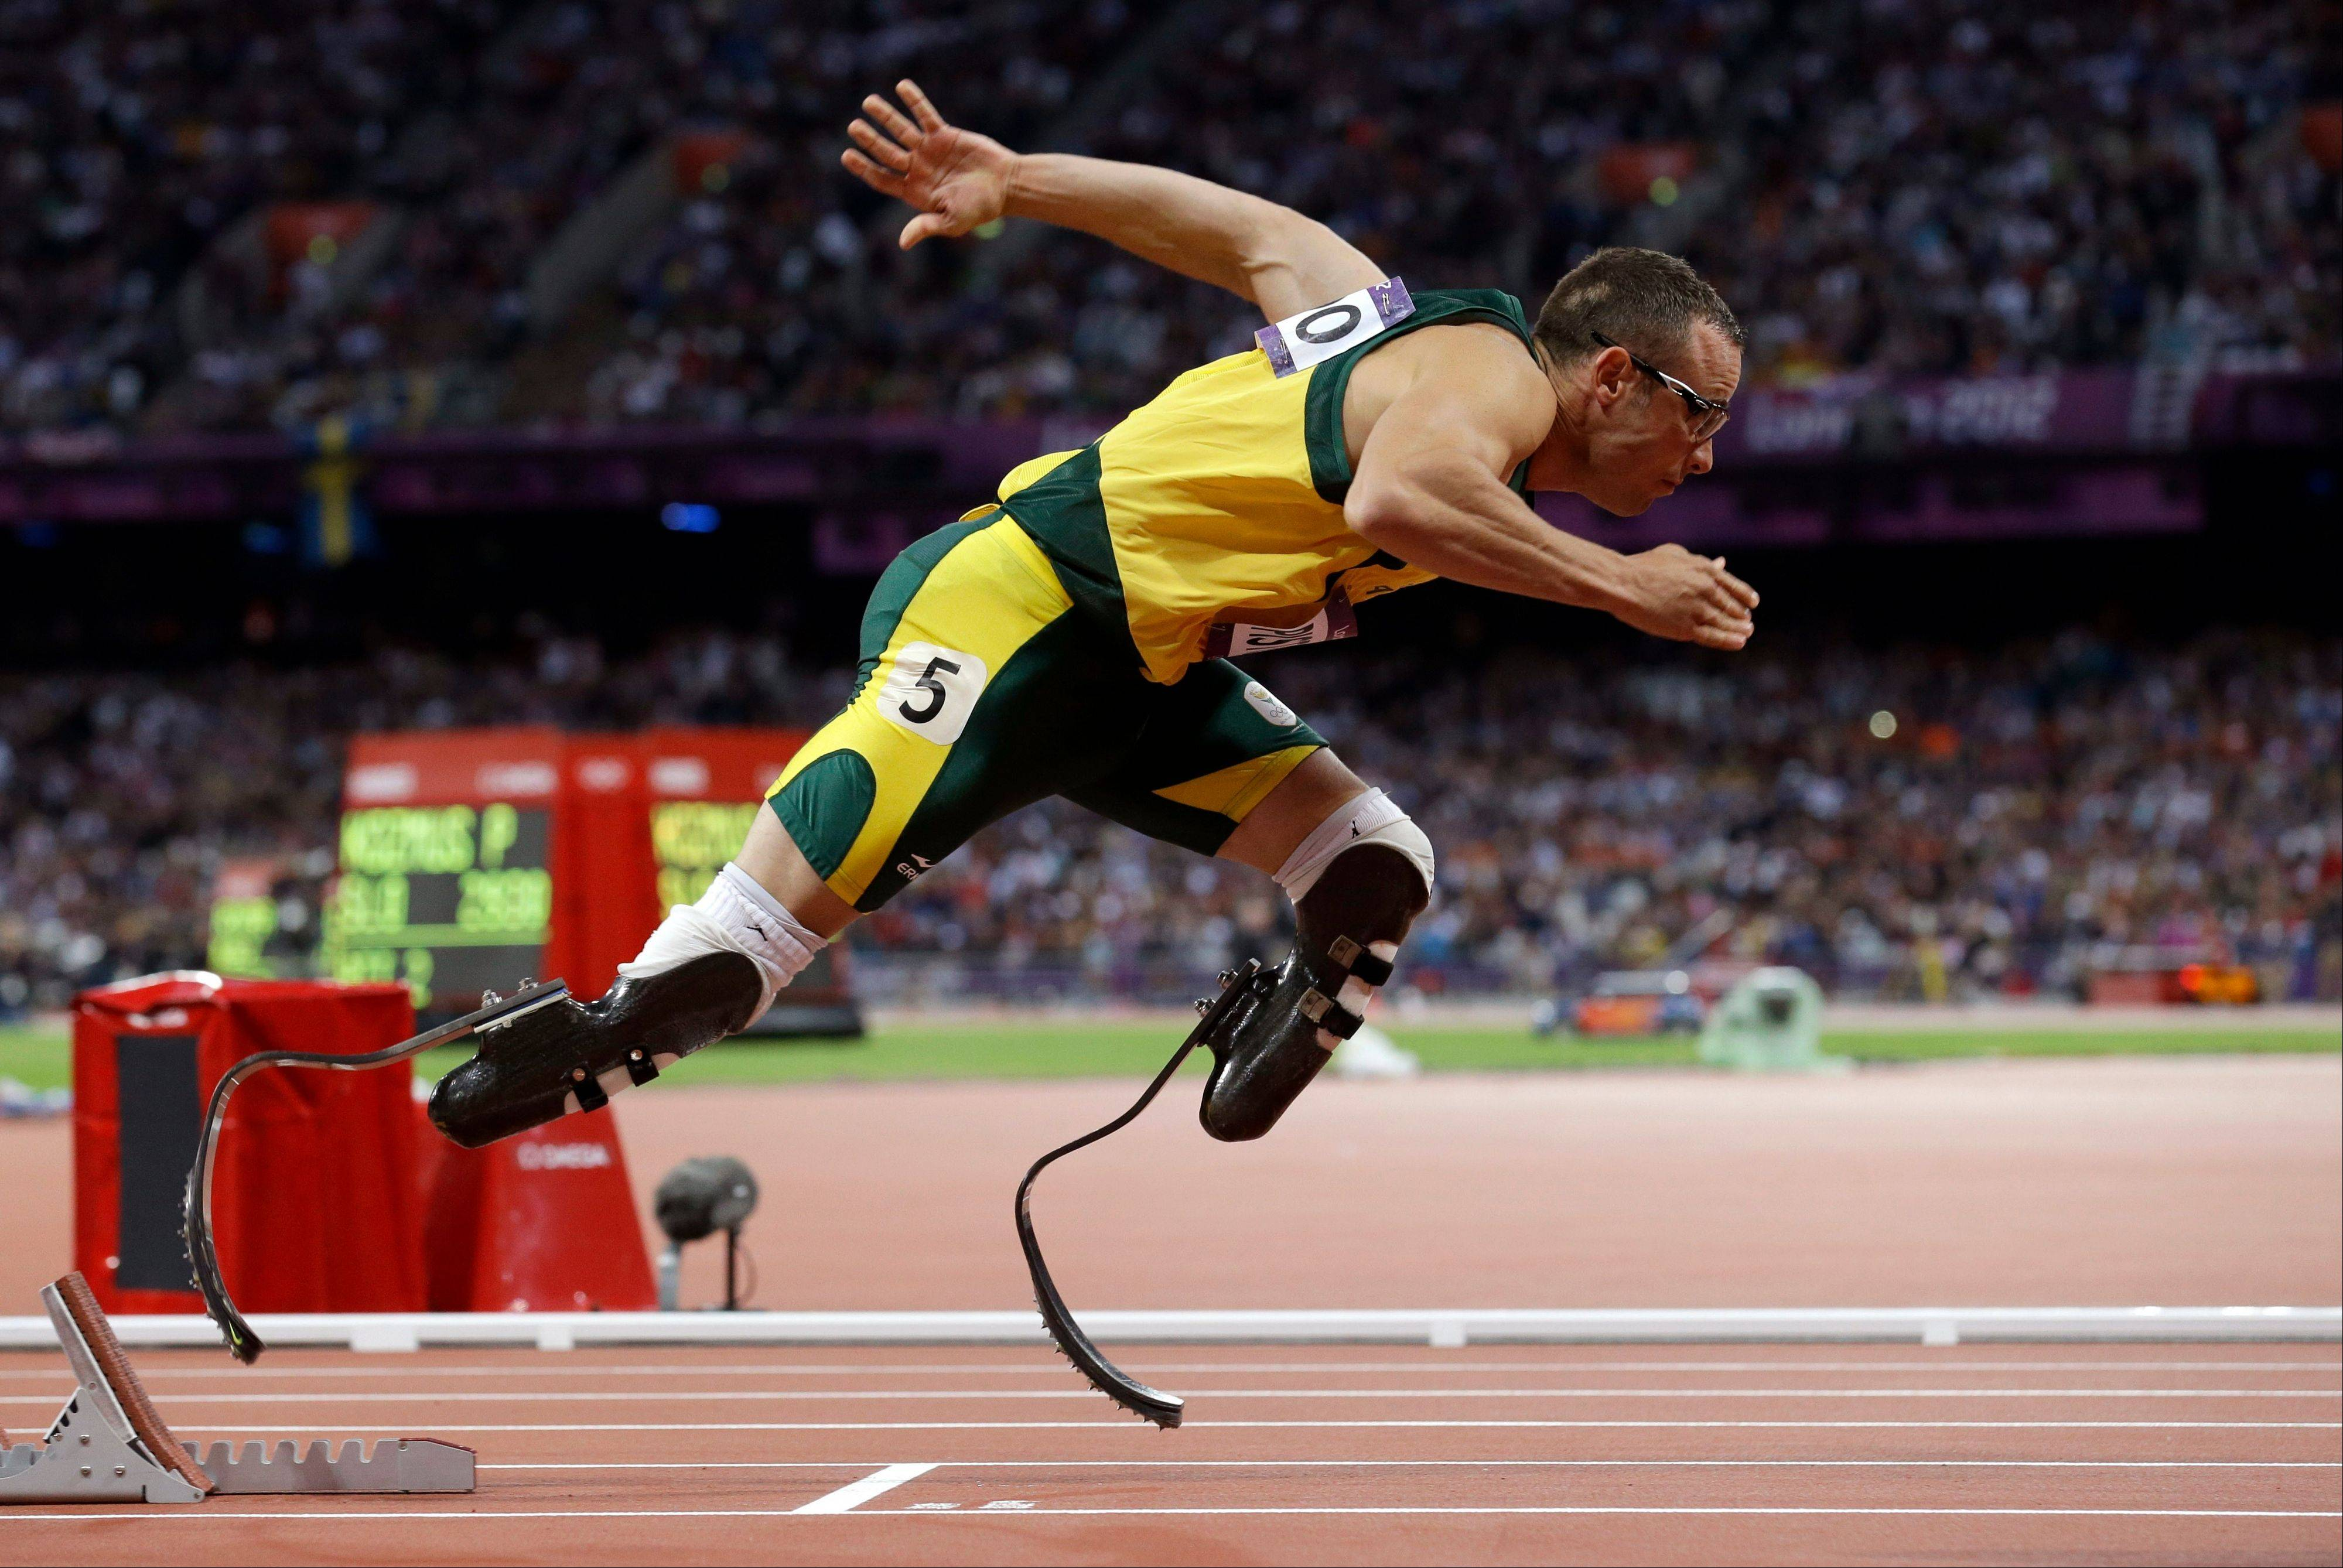 South Africa�s Oscar Pistorius starts in the men�s 400-meter semifinal during the athletics in the Olympic Stadium at the 2012 Summer Olympics in London. Paralympic superstar Oscar Pistorius was charged Thursday, Feb. 14, 2013, with the murder of his girlfriend who was shot inside his home in South Africa, a stunning development in the life of a national hero known as the Blade Runner for his high-tech artificial legs.